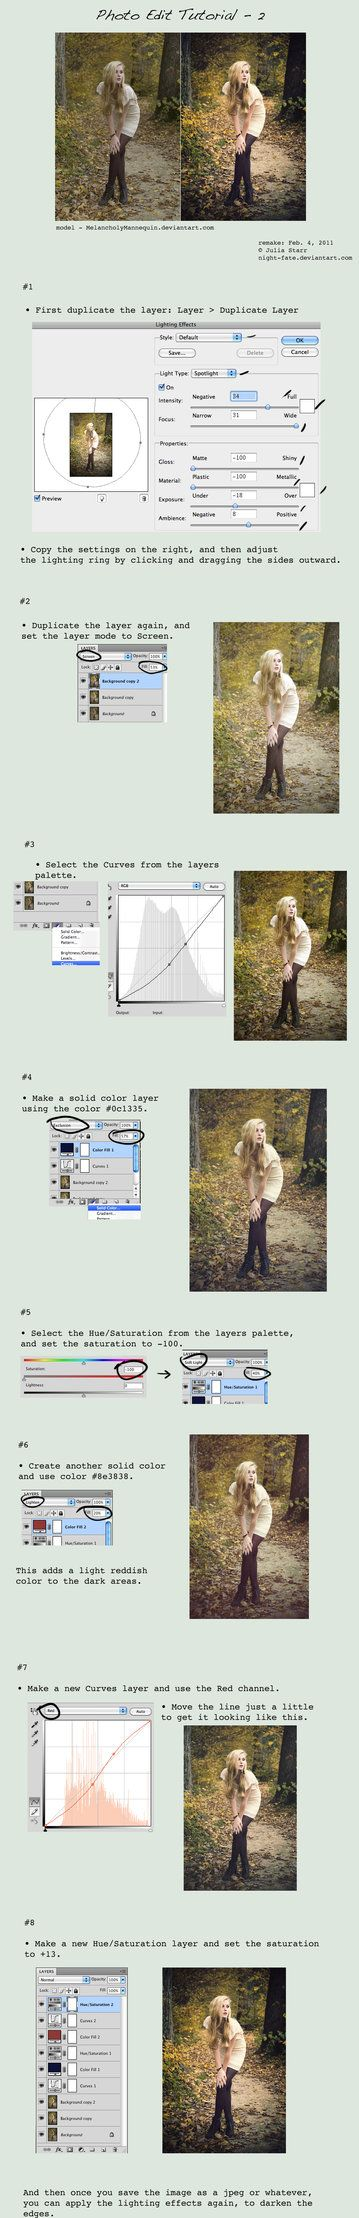 Photo Editing Tutorial